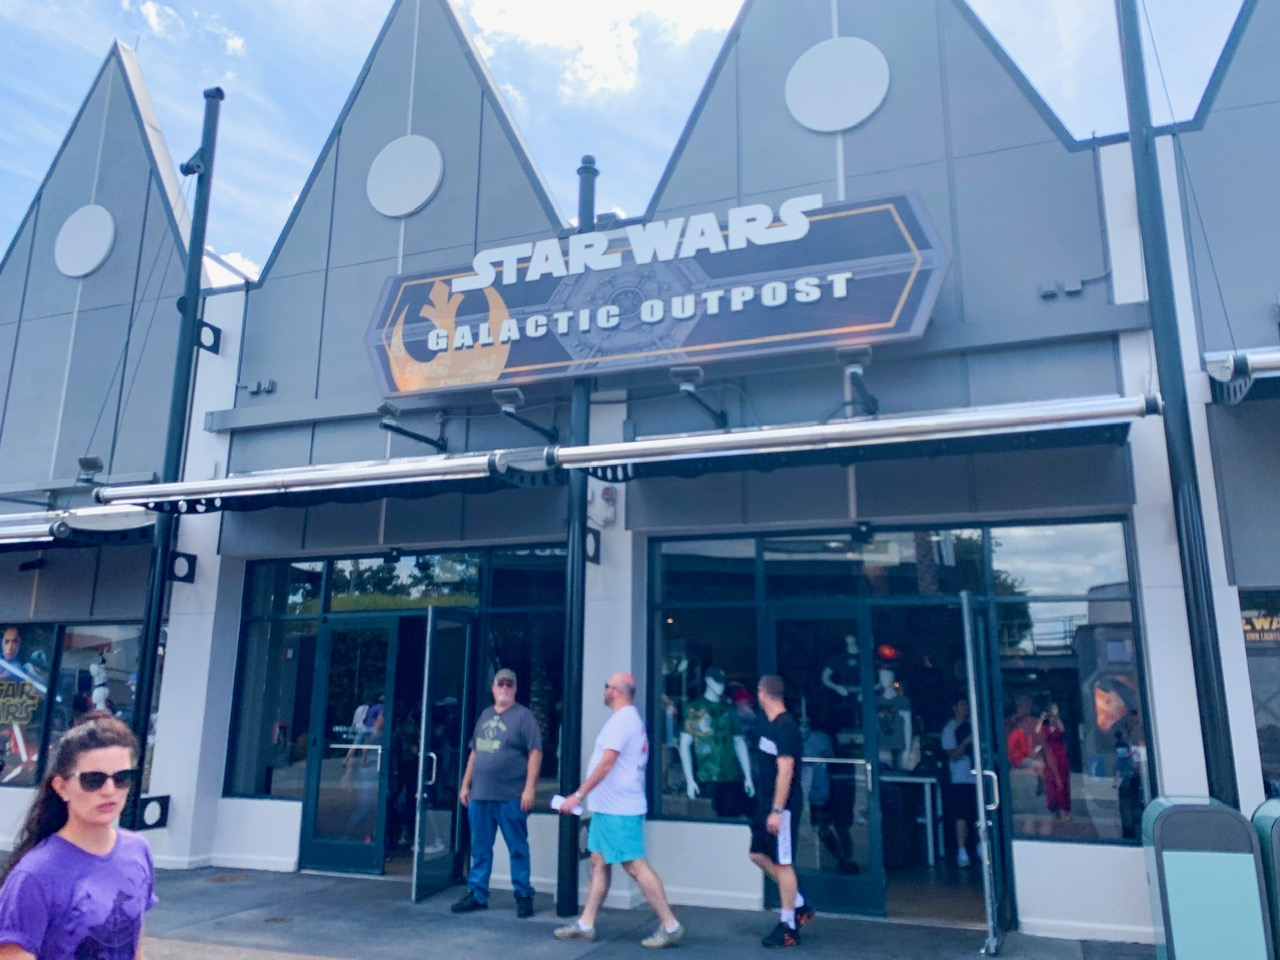 "Storefront of the Star Wars Outpost which is a silver building with two large triangles on top with a sign that says ""Star Wars Galactic Outpost"" and people walking in and out of the store"